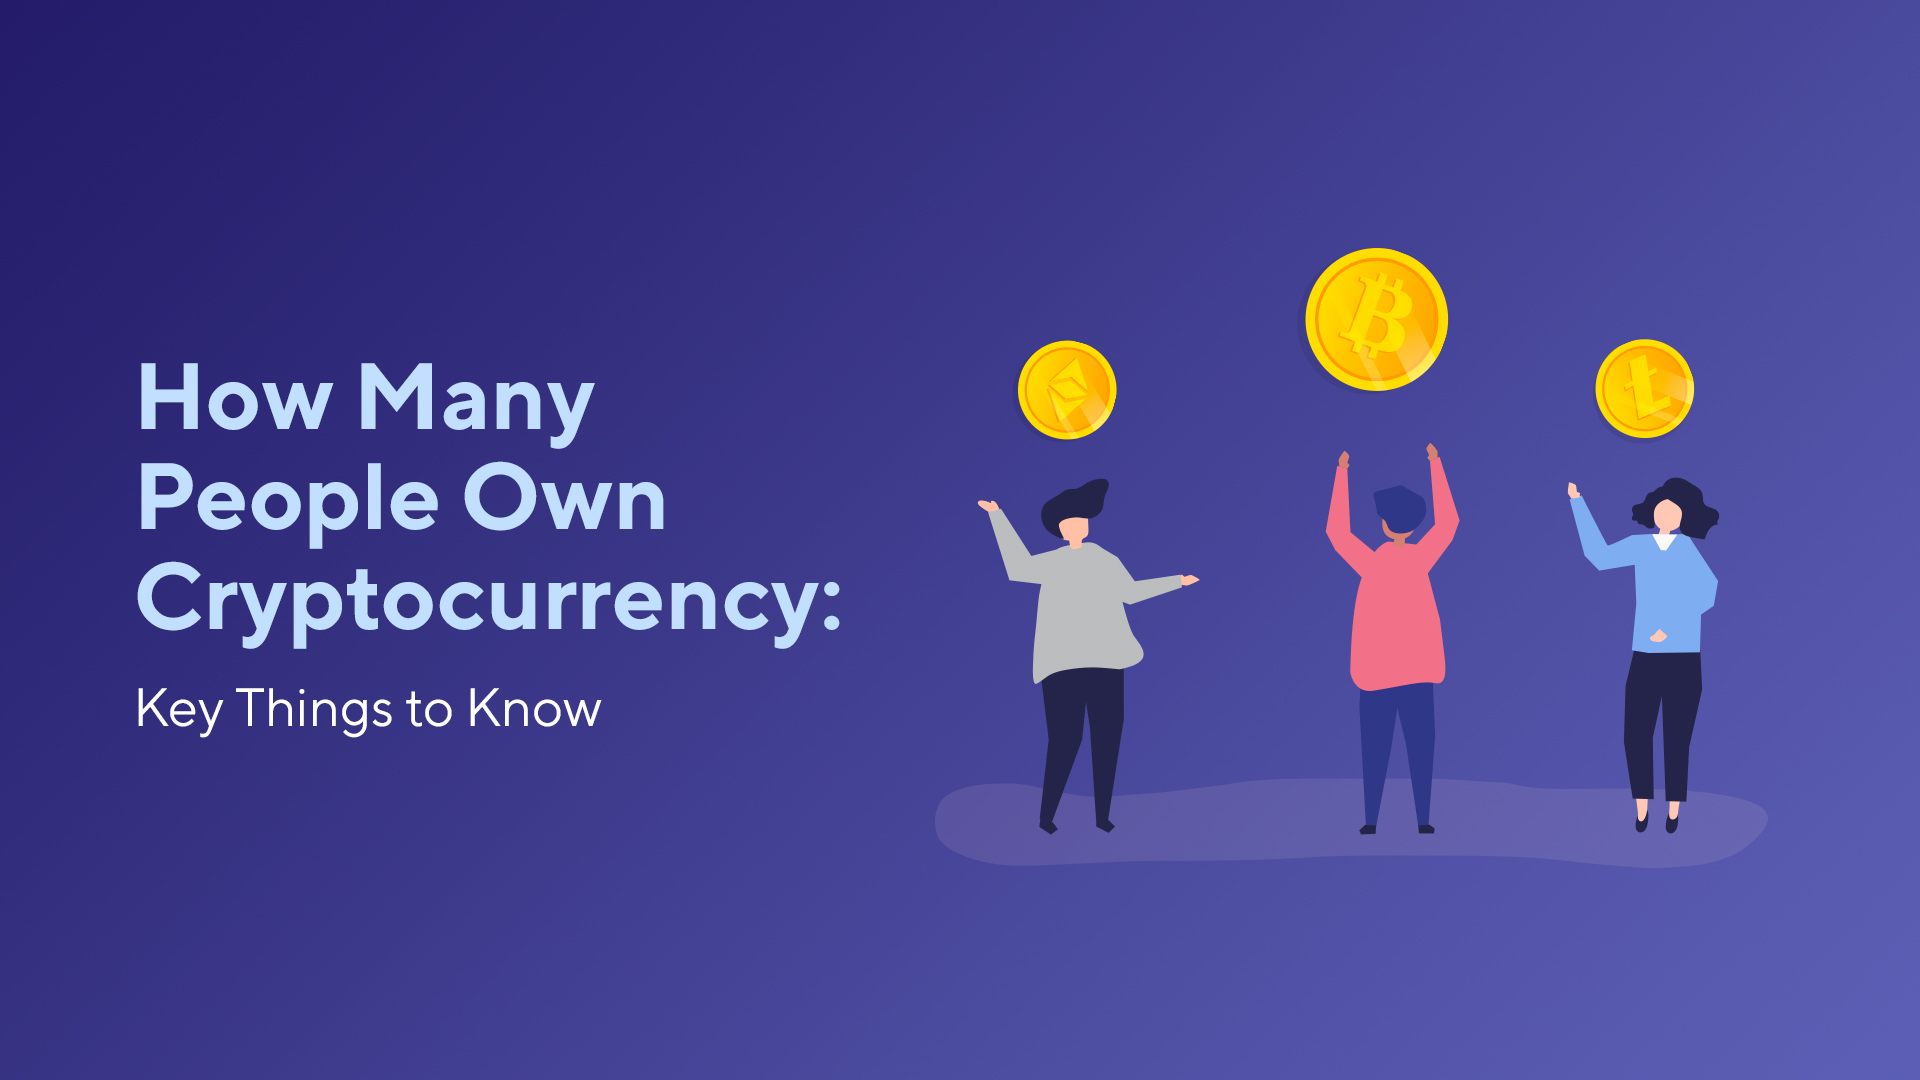 How Many People Own Cryptocurrency: Key Things to Know